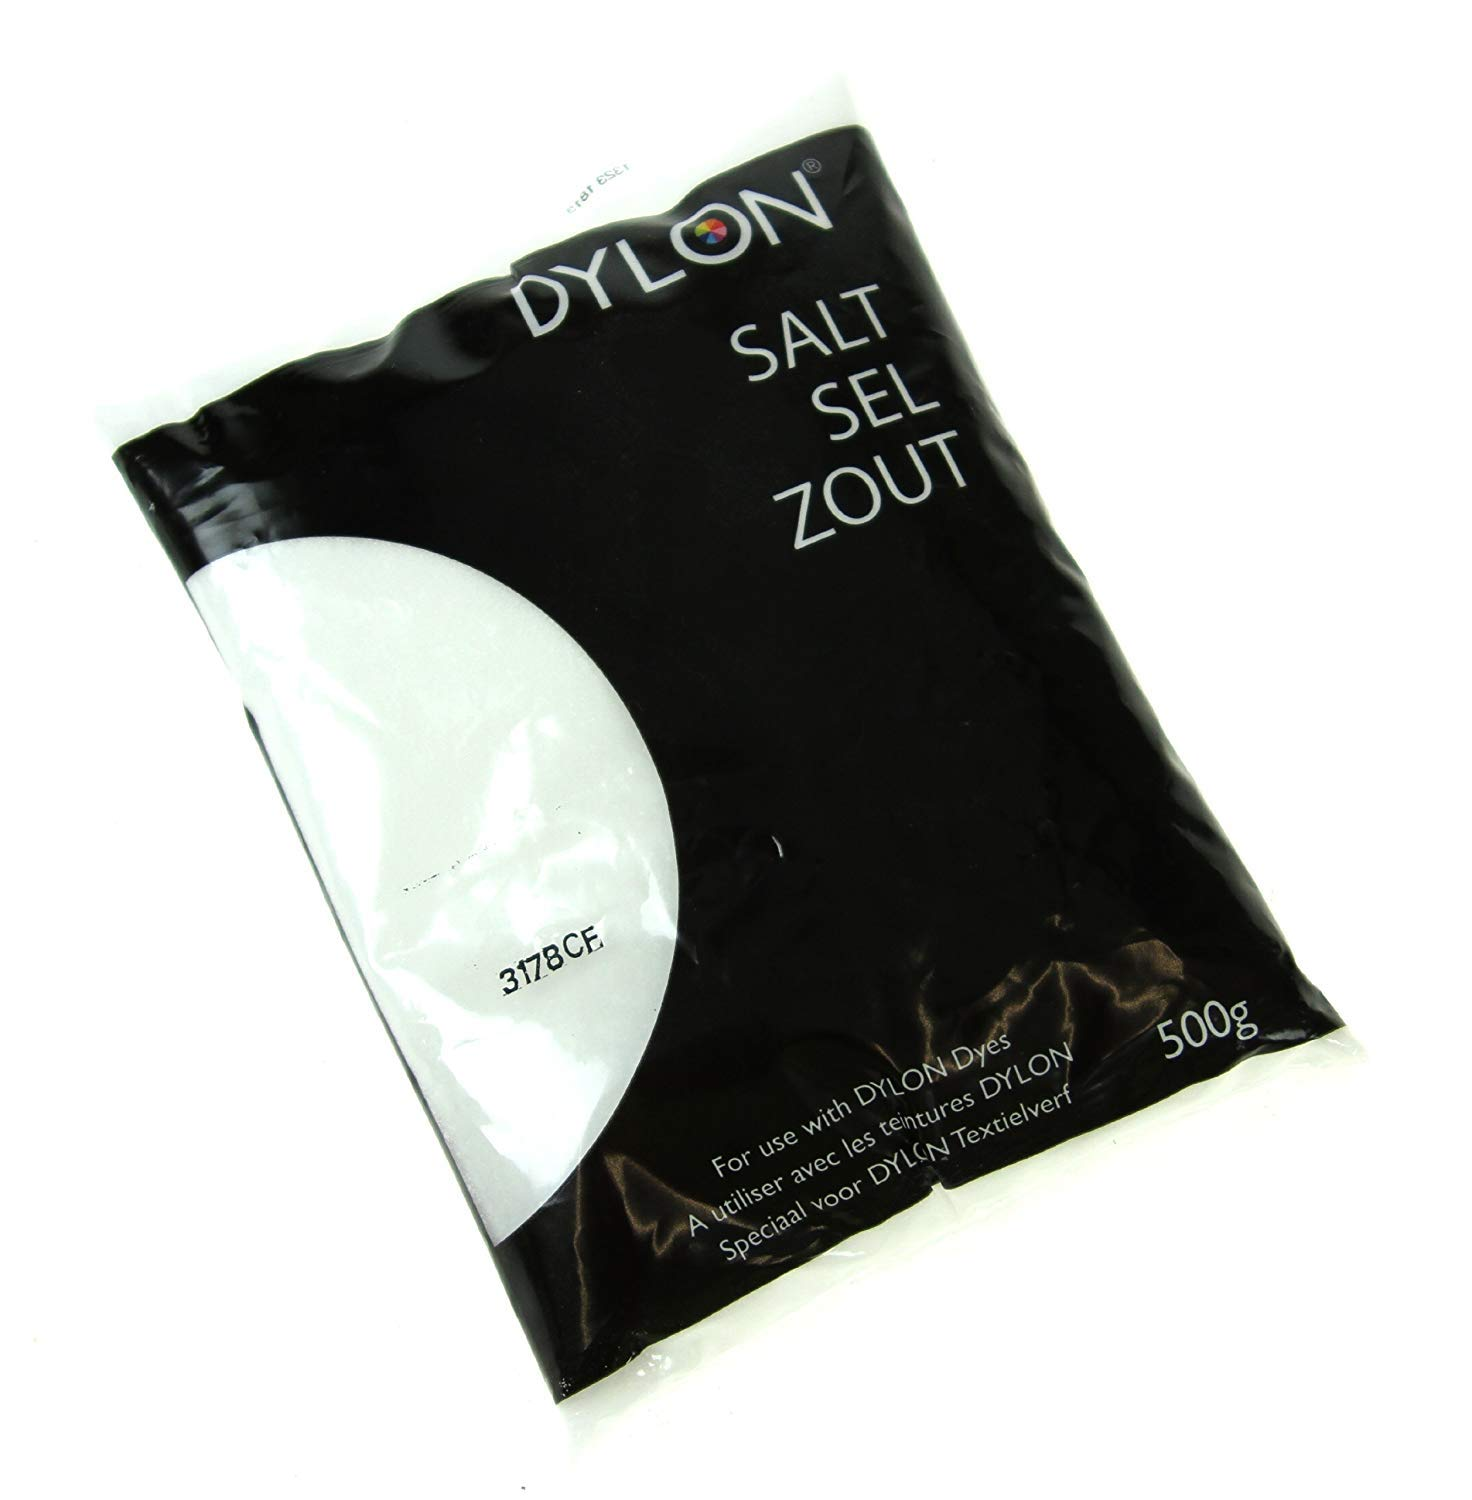 Dylon DYE Salt 500g for use with Dylon Dyes 6002414800